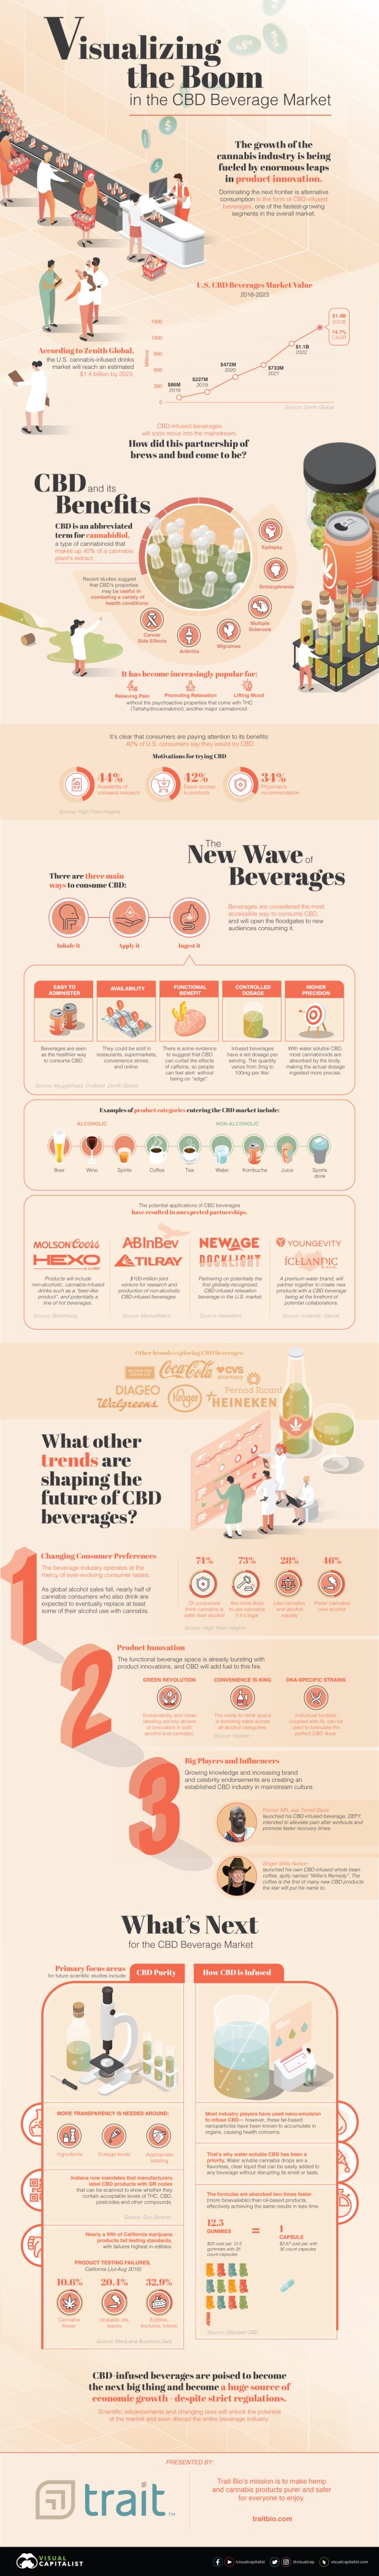 Visualizing the Boom in the CBD Beverage Market